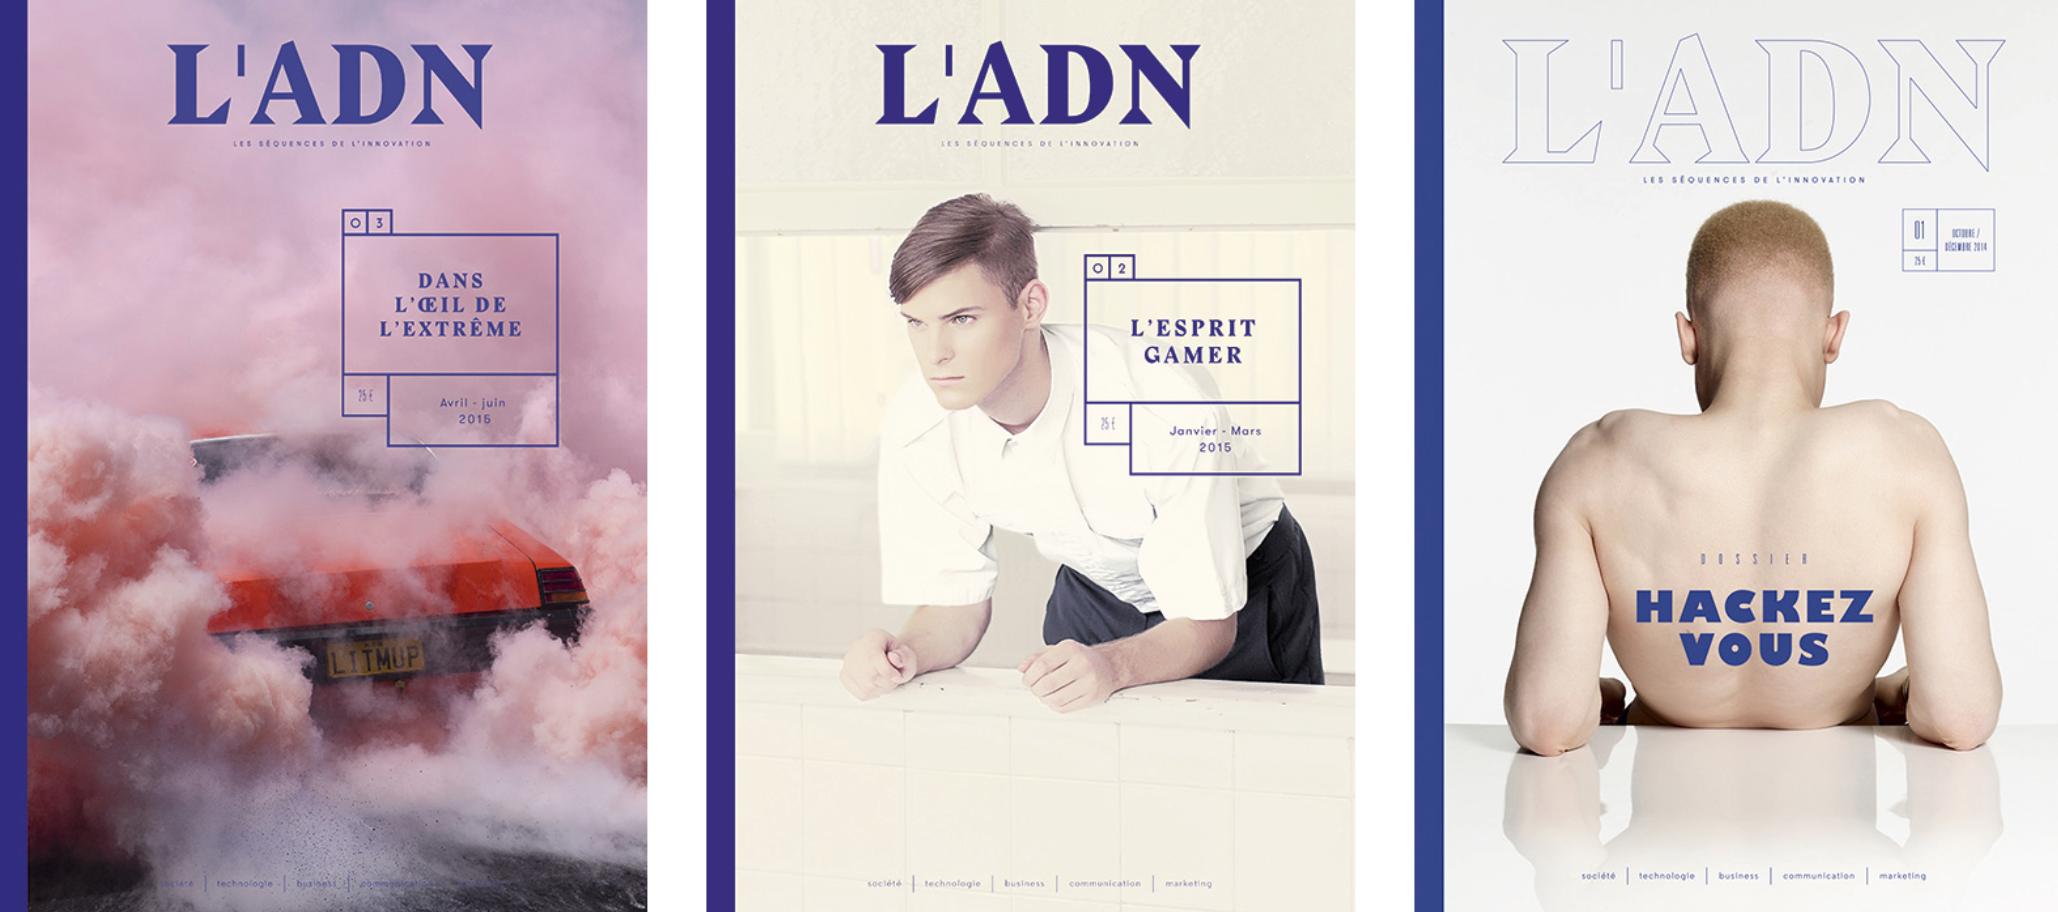 l-adn-revue-magazine-communication-marketing-publicite-abonnement-librairie-couvertures-3